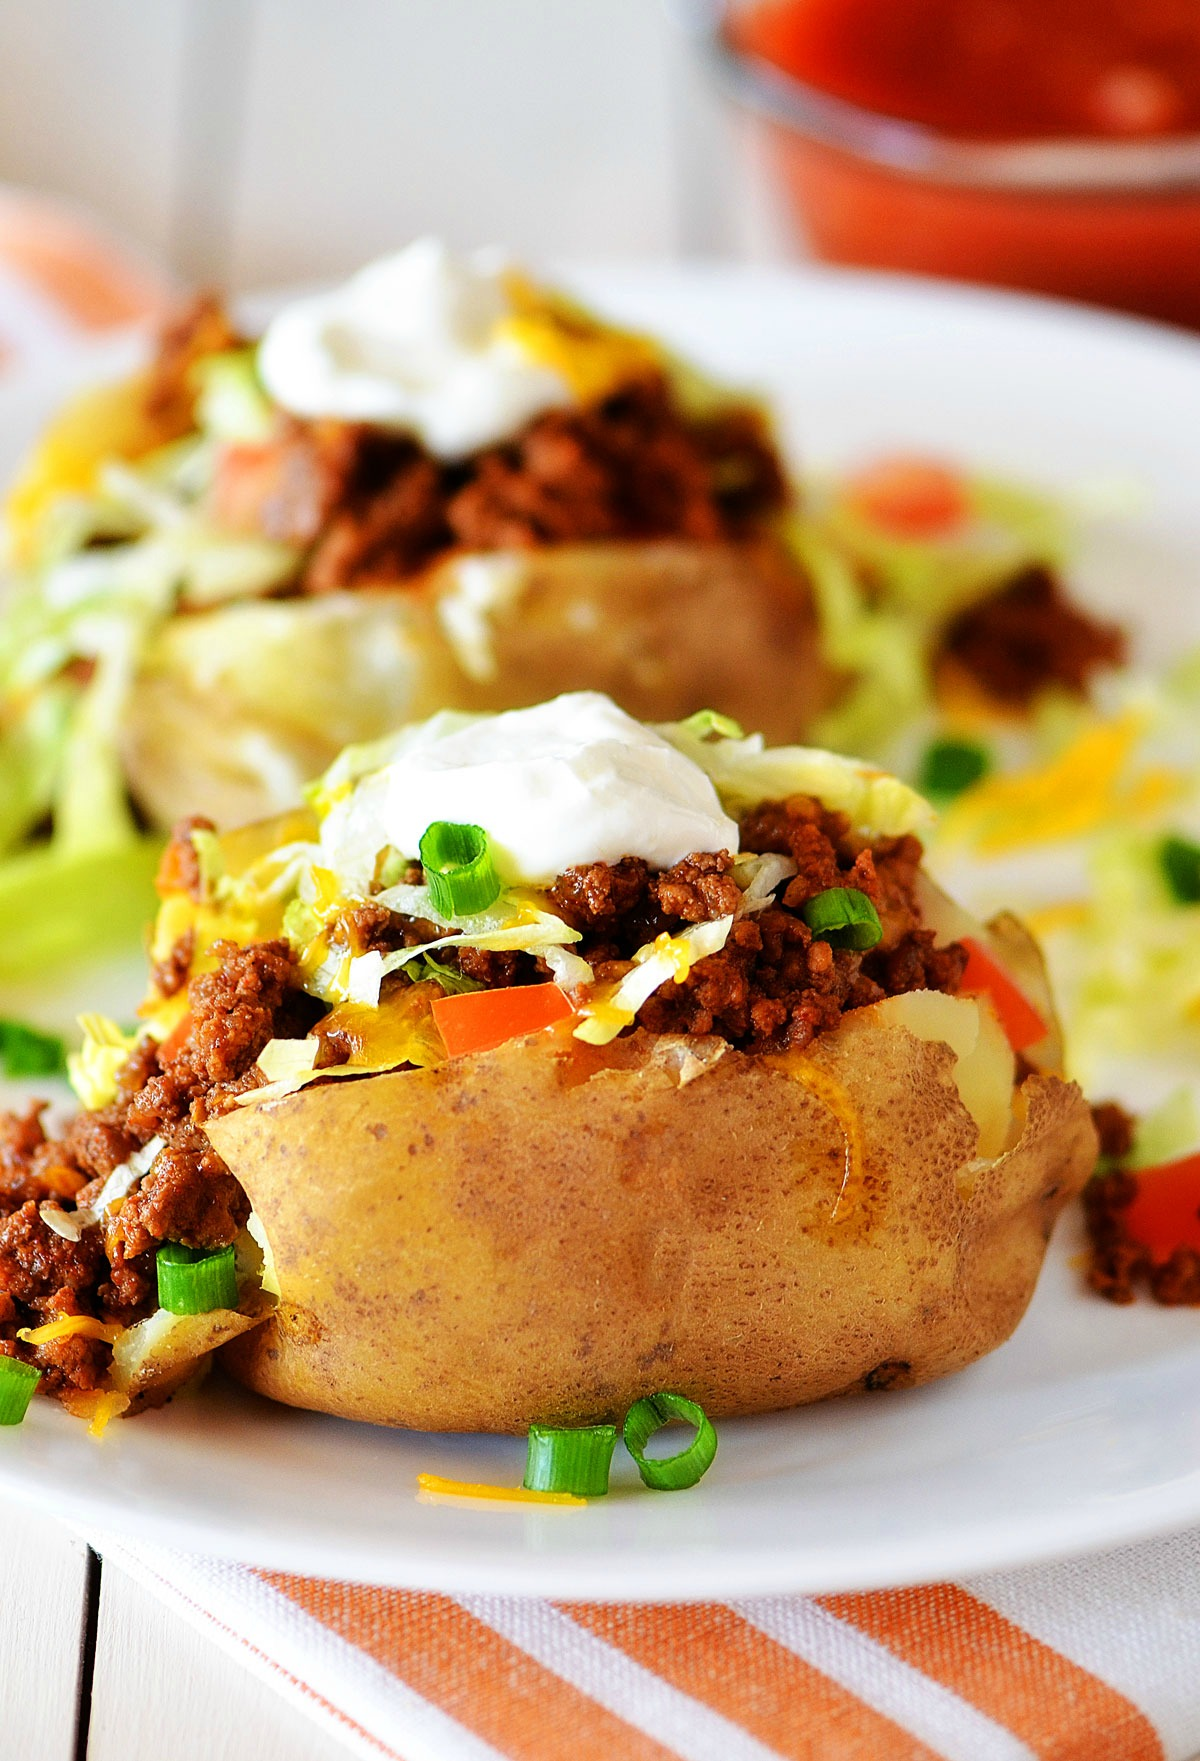 Taco Potatoes are loaded with seasoned ground beef, cheese, lettuce, sour cream and salsa all over a baked potato. Life-in-the-Lofthouse.com